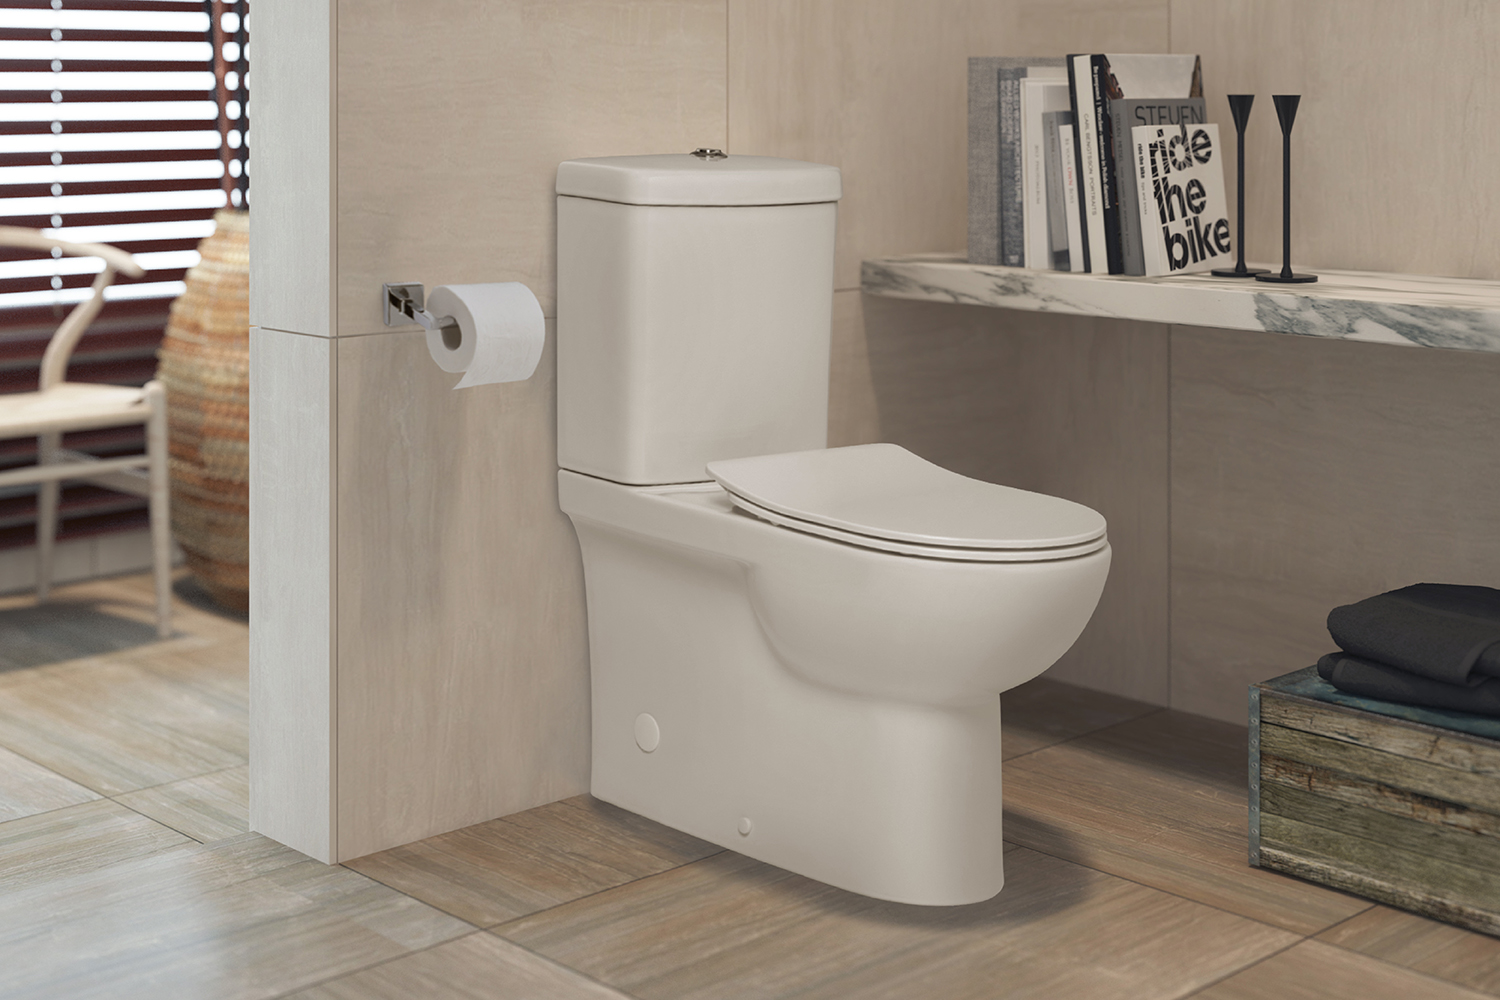 New Rimless Toilet Suites by JohnsonSuisse: No Rim. No Blockage. No Hassle.